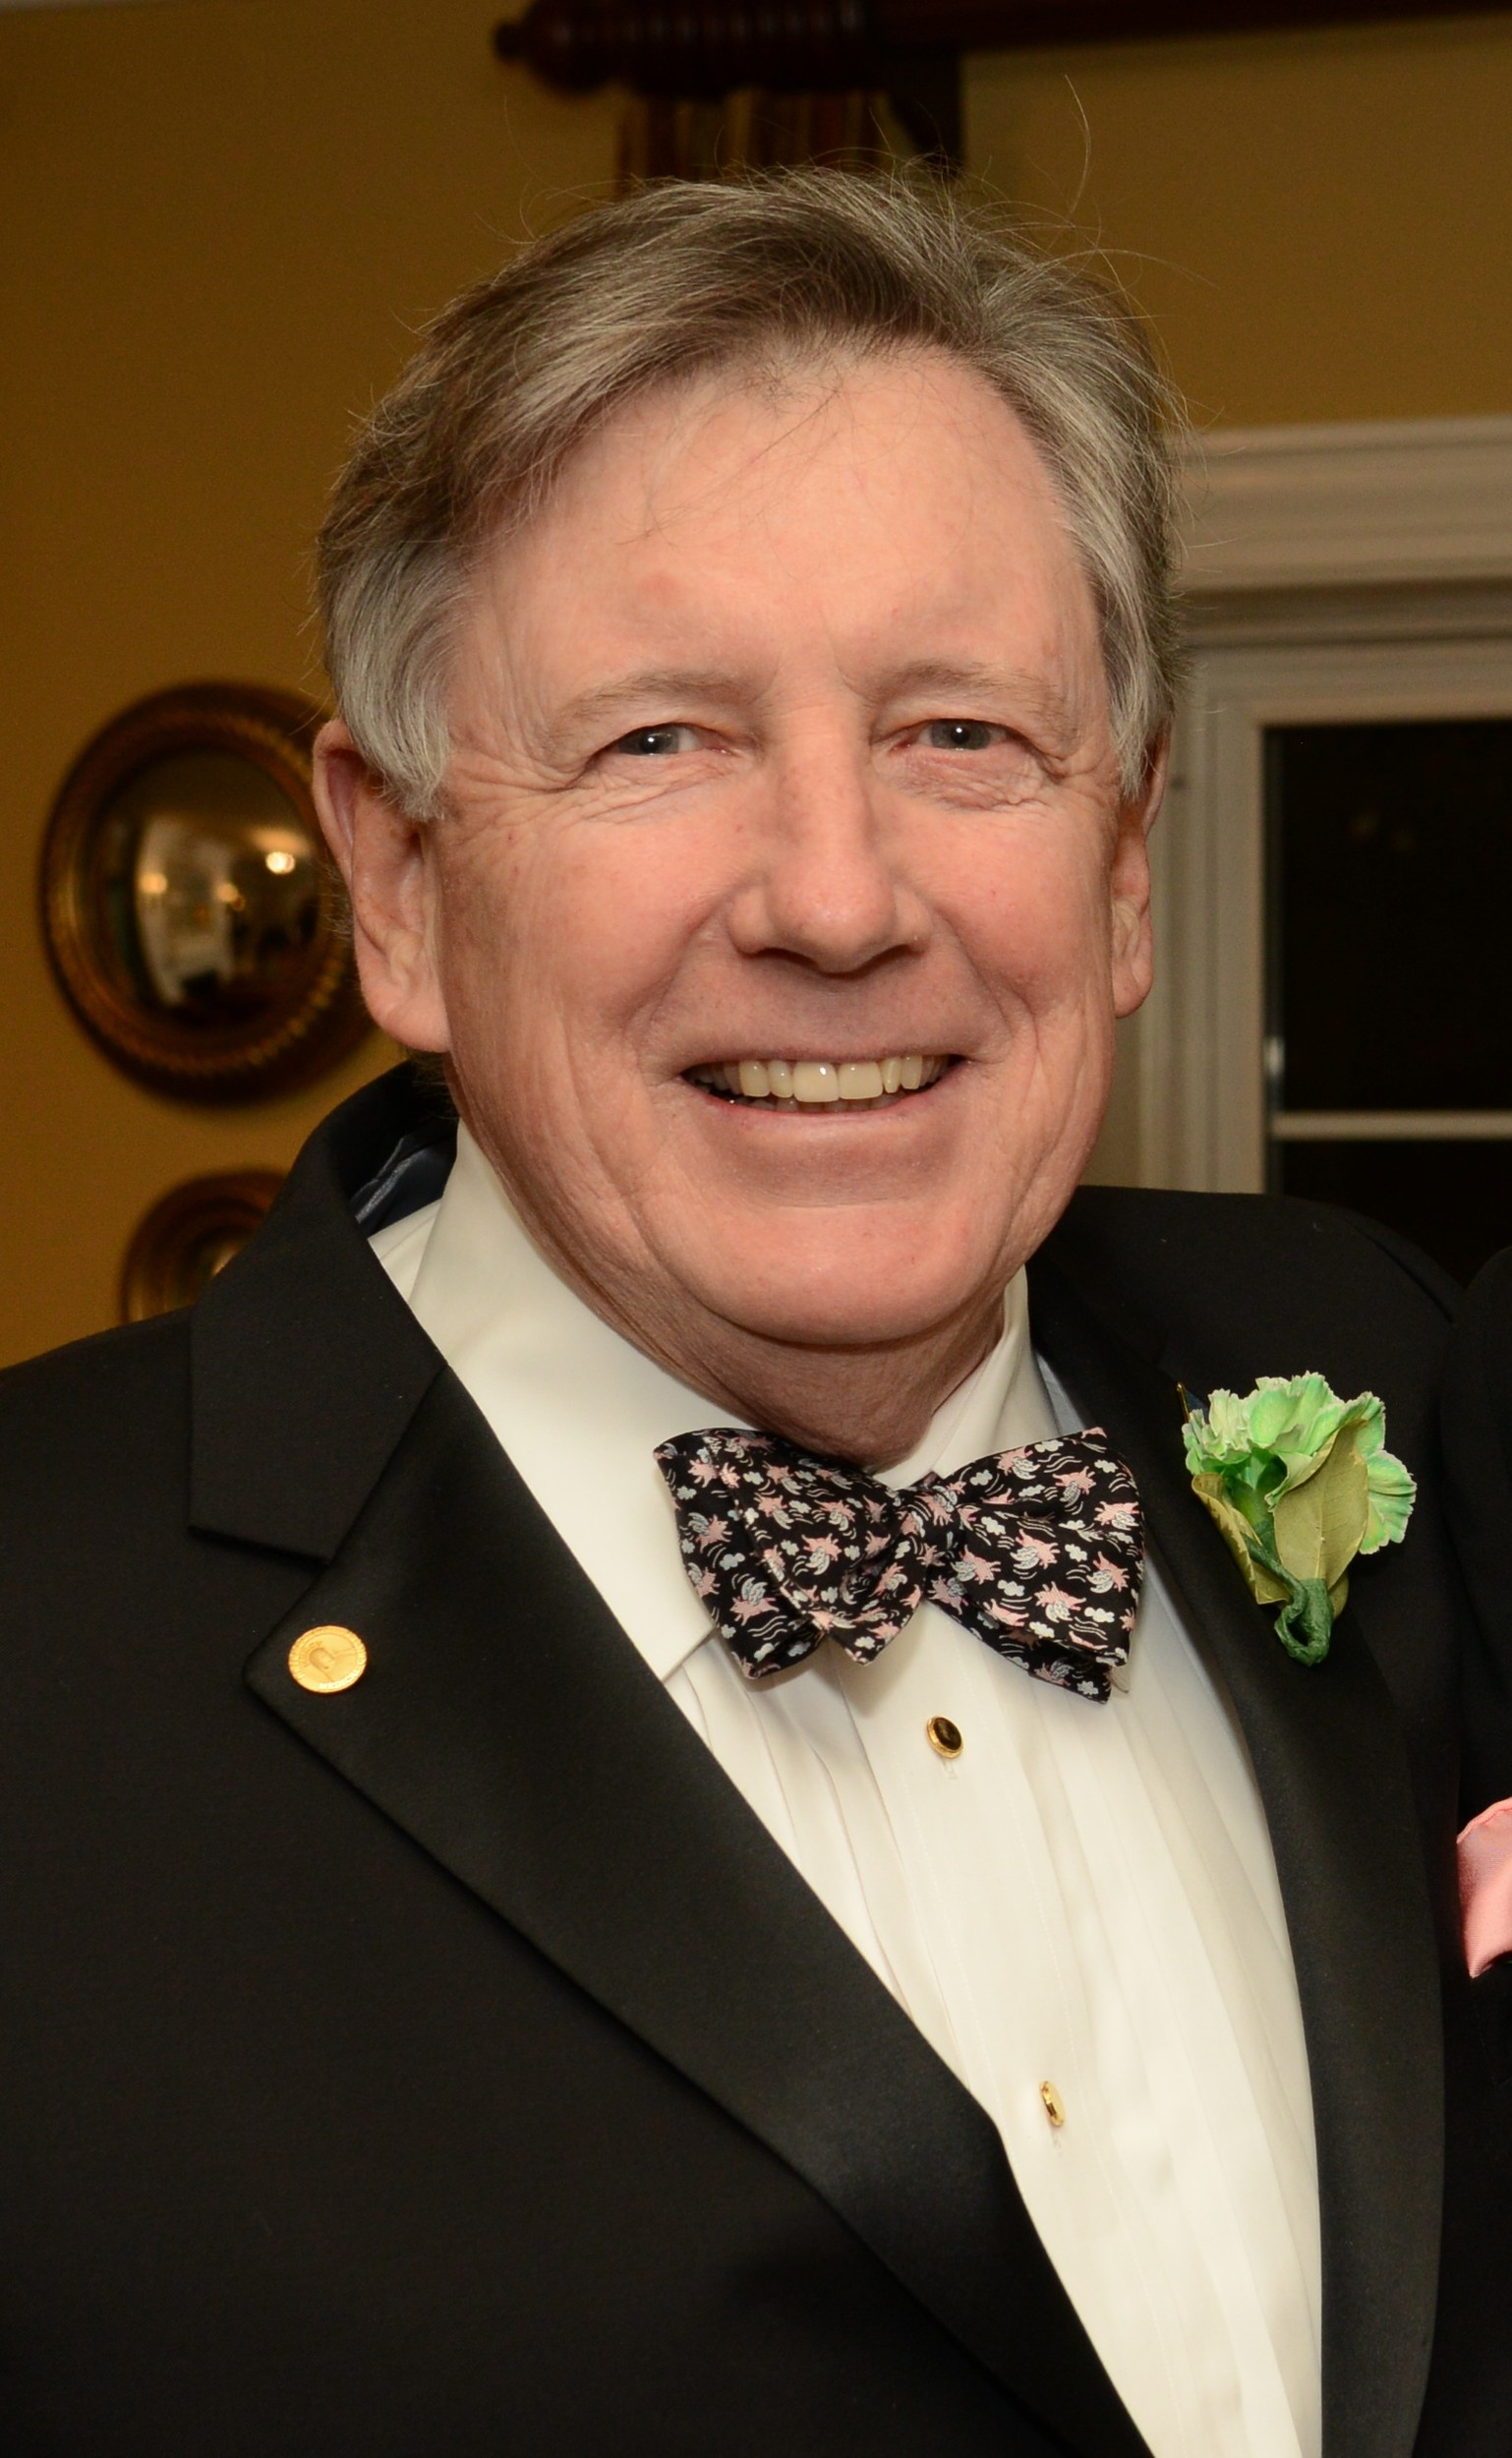 Donald Regan will be honored at the Friends of Mercy Medical Center's Golf Classic on Sept. 14.